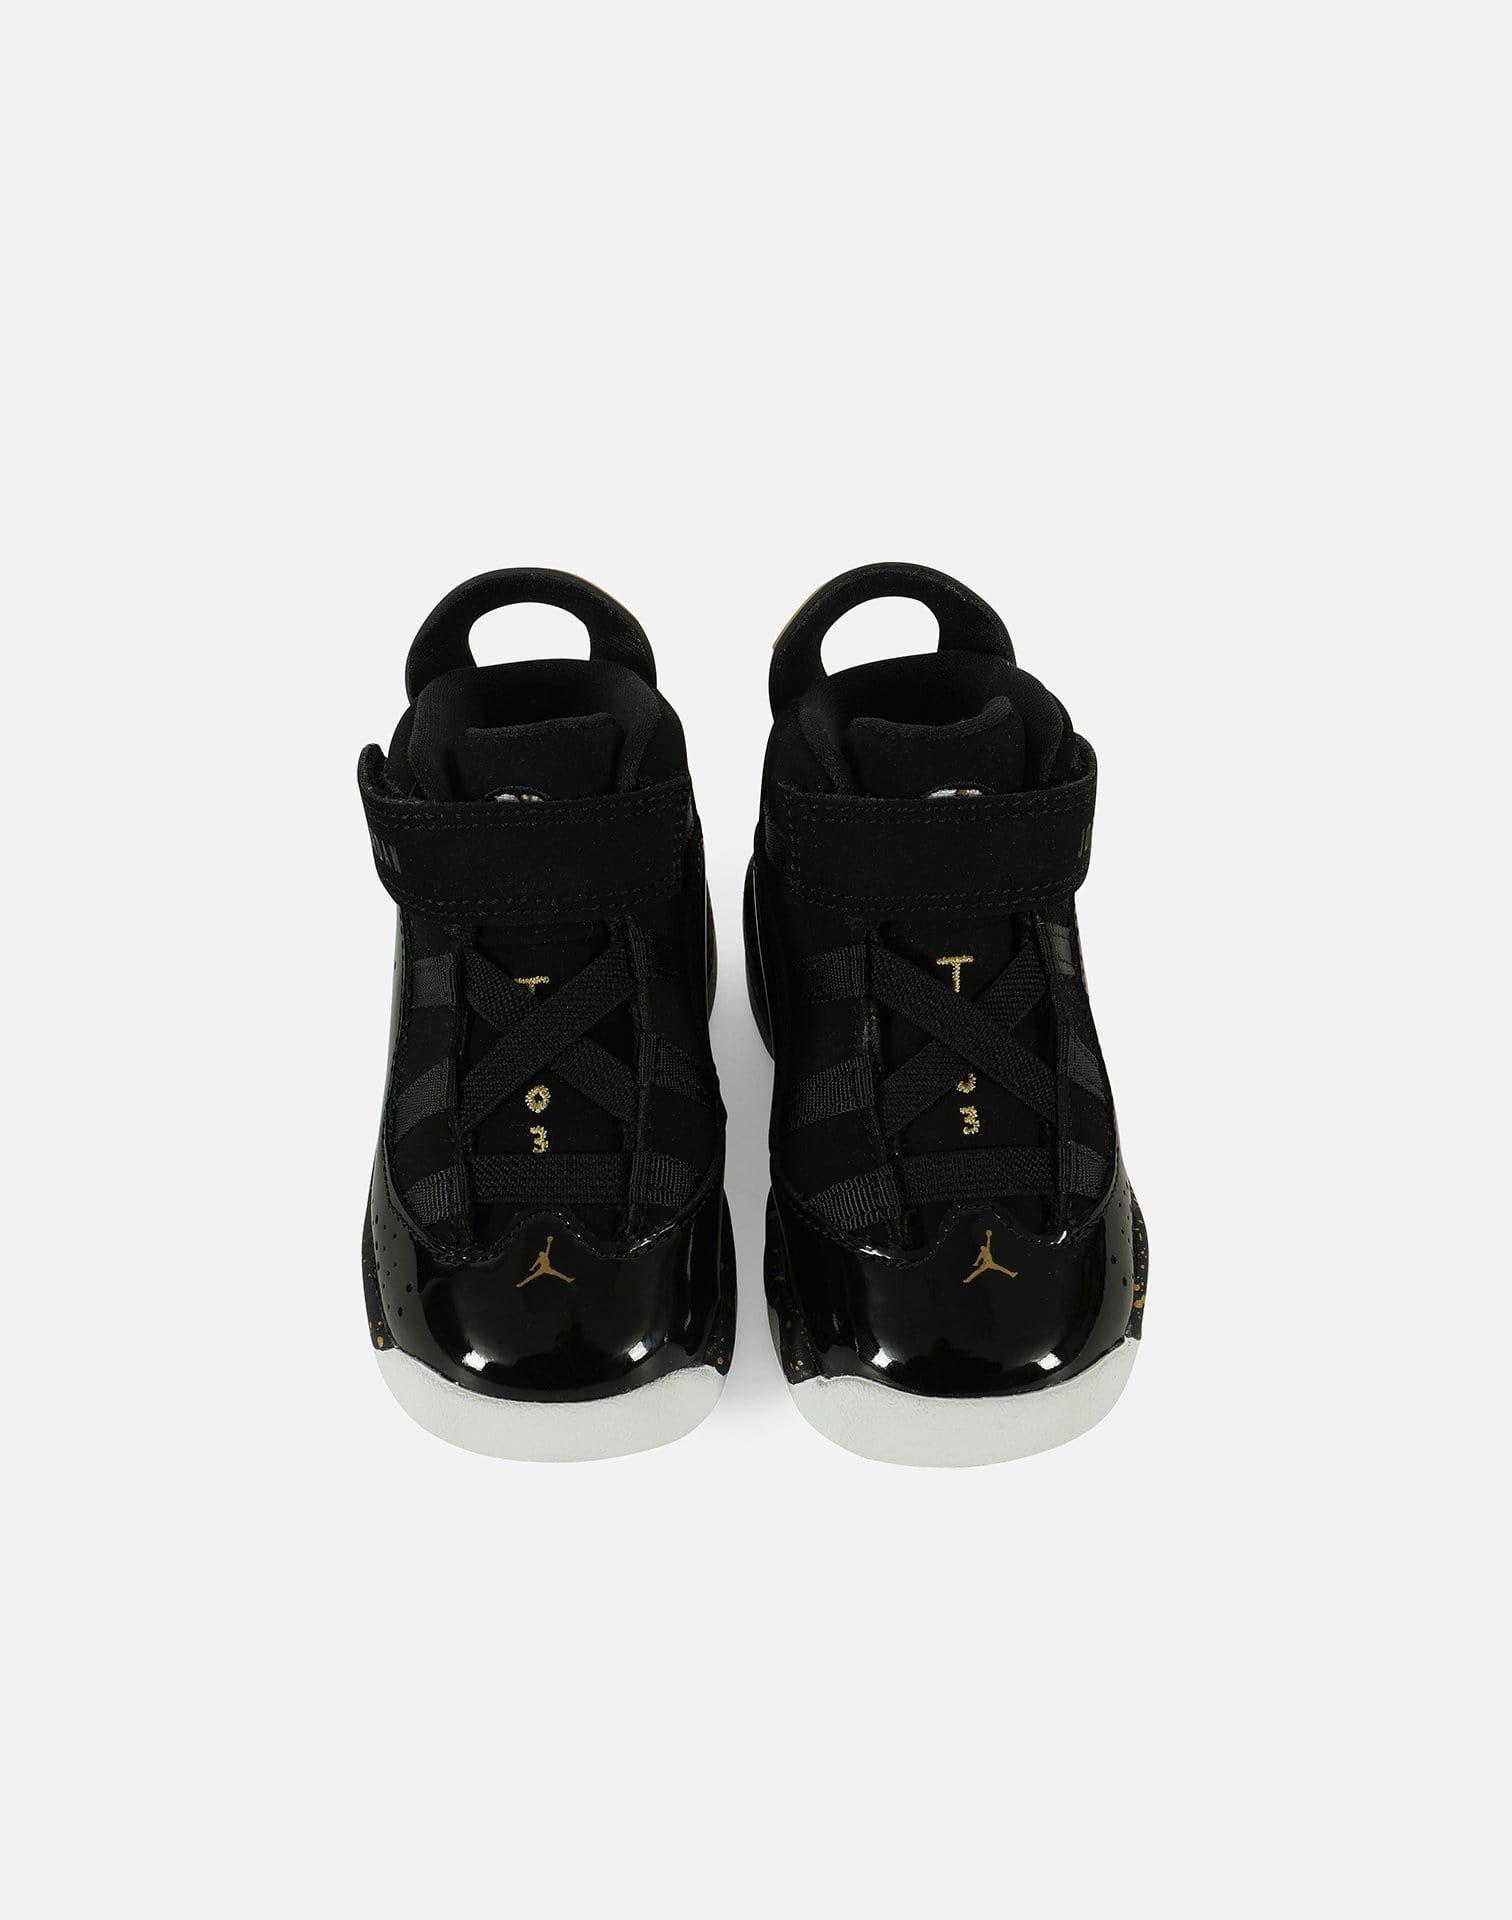 AIR JORDAN 6 RINGS INFANT